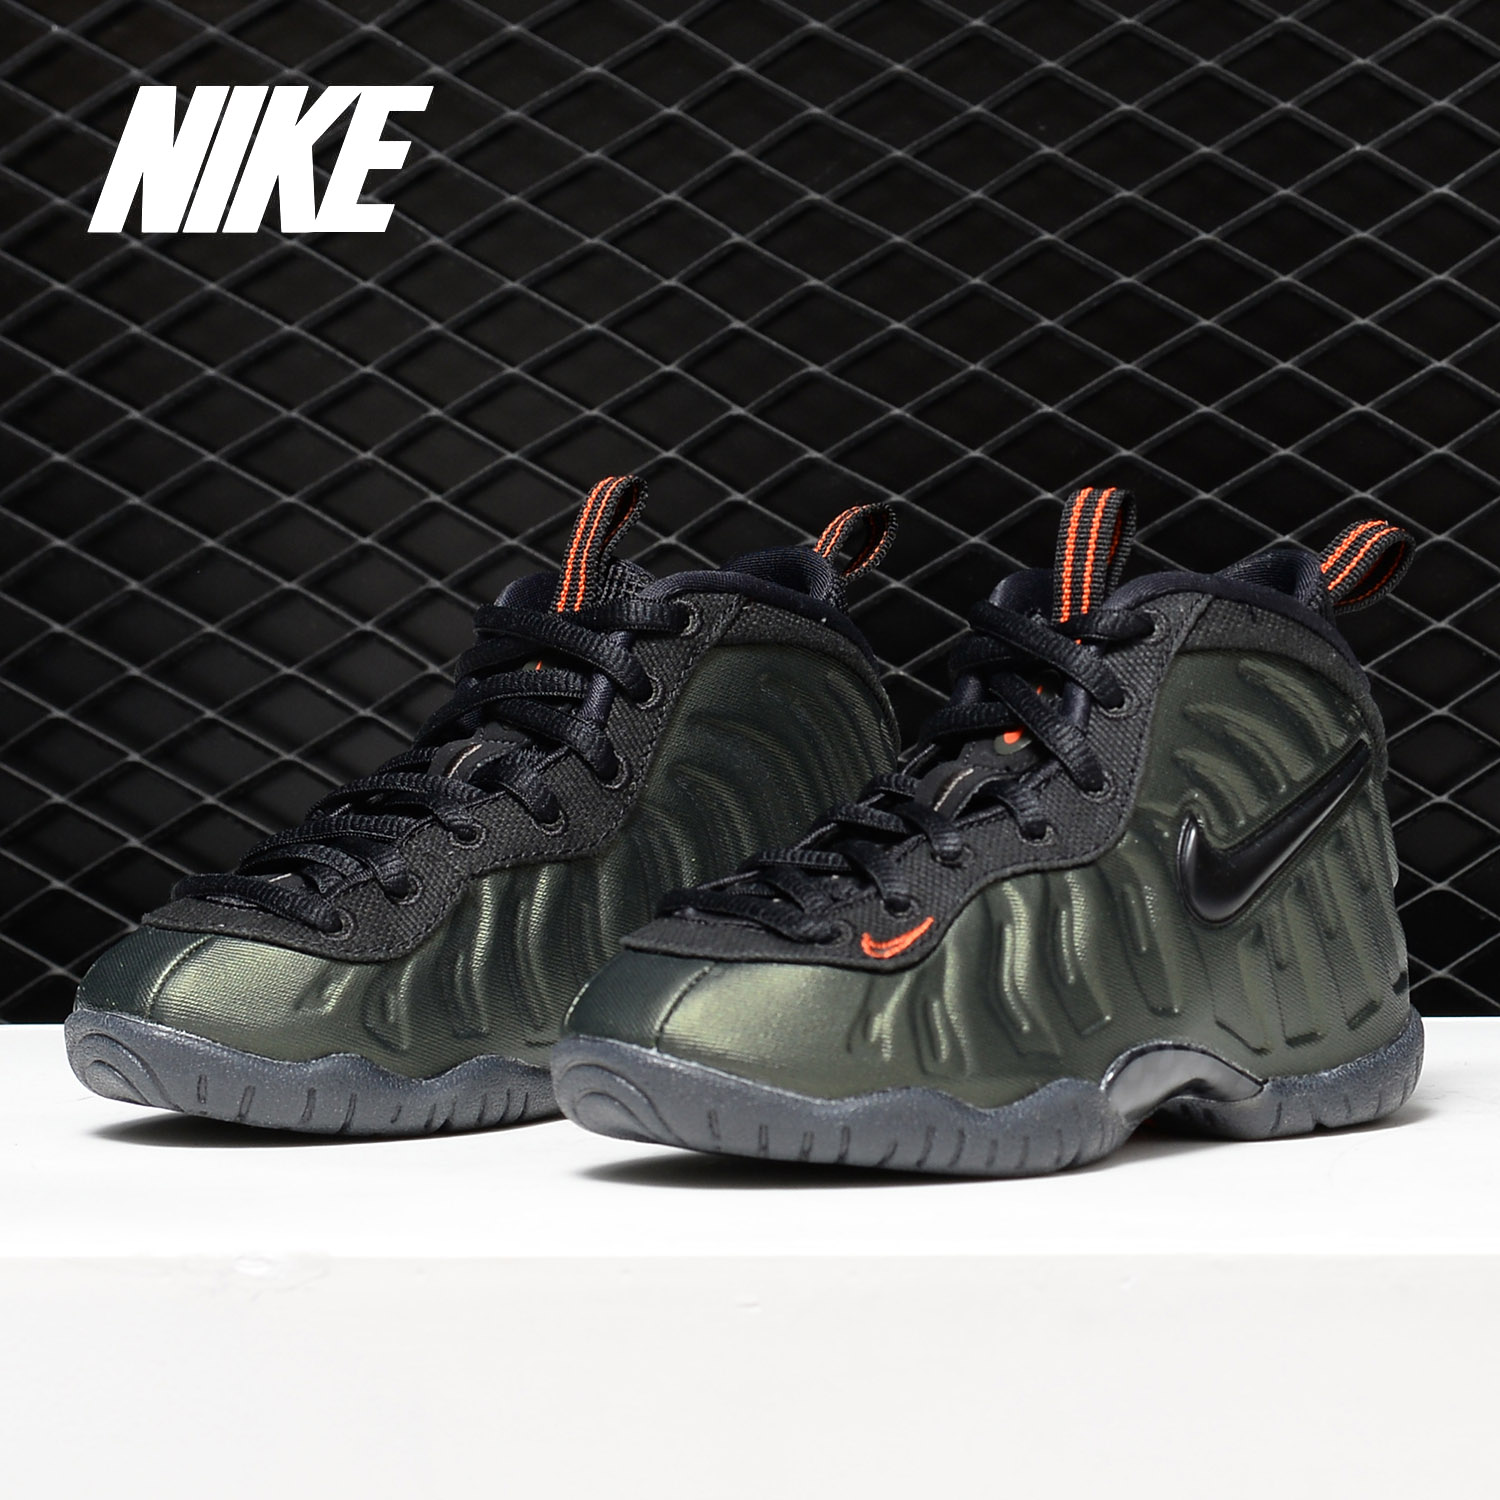 Nike/耐克正品LITTLE POSITE PRO(PS)喷泡篮球鞋婴小童 843755